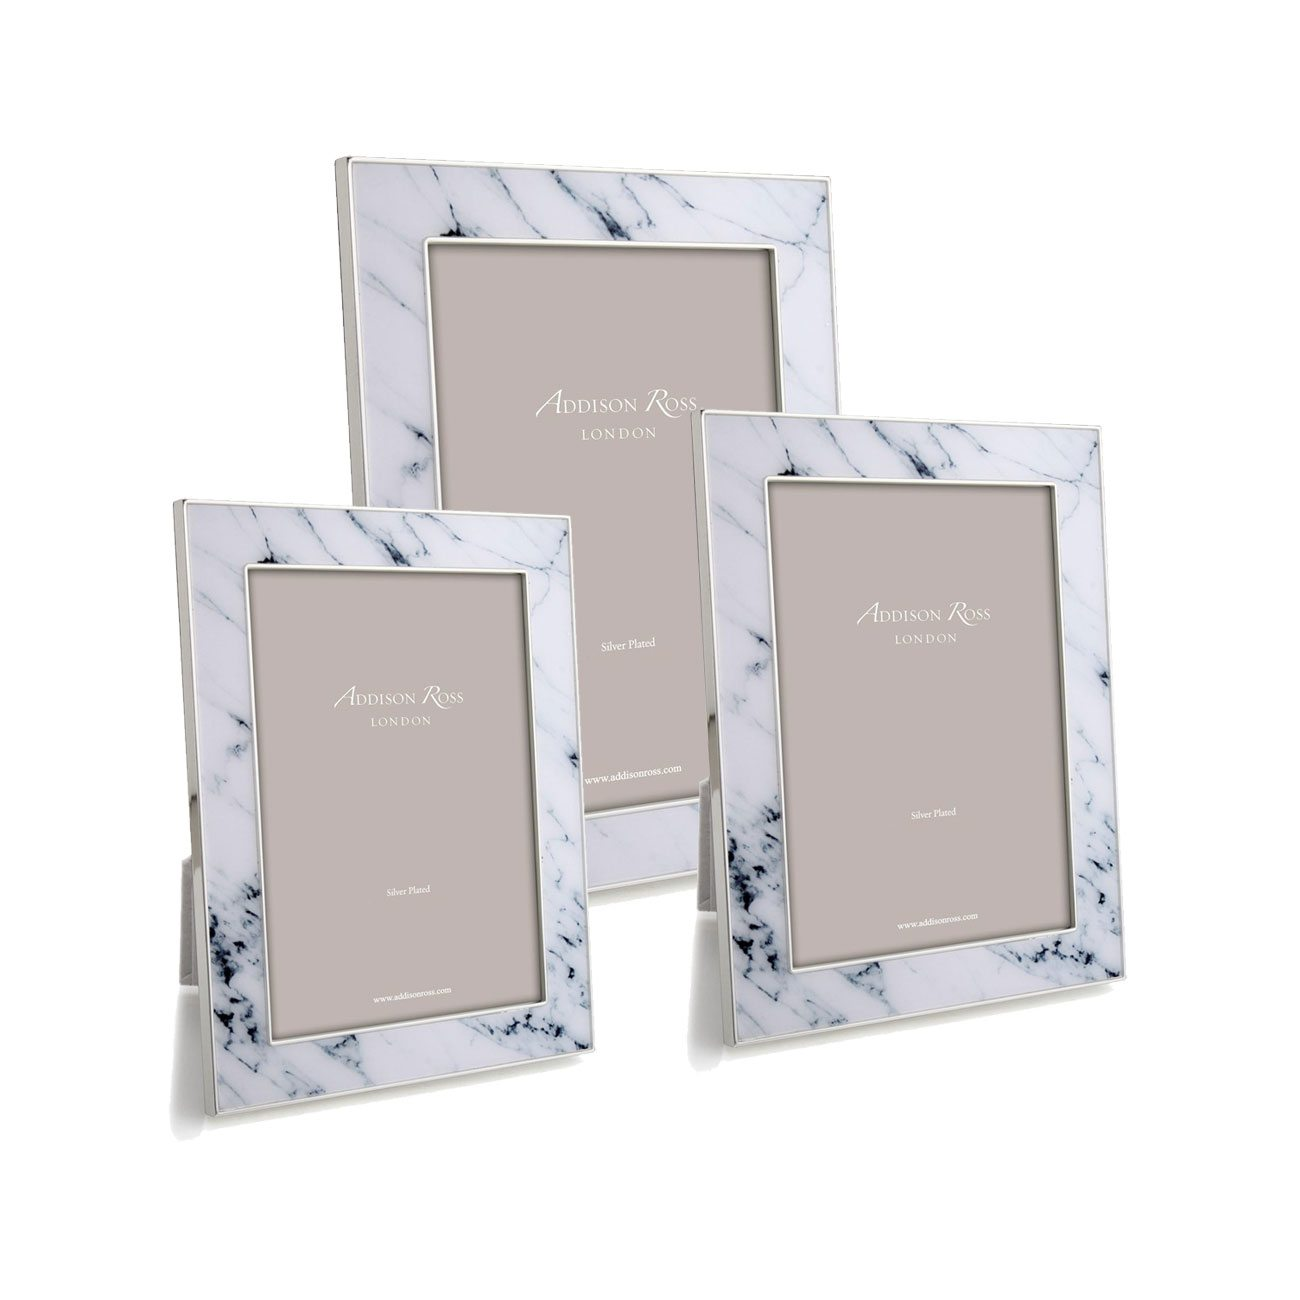 Addison Ross White Marble Frame Collection